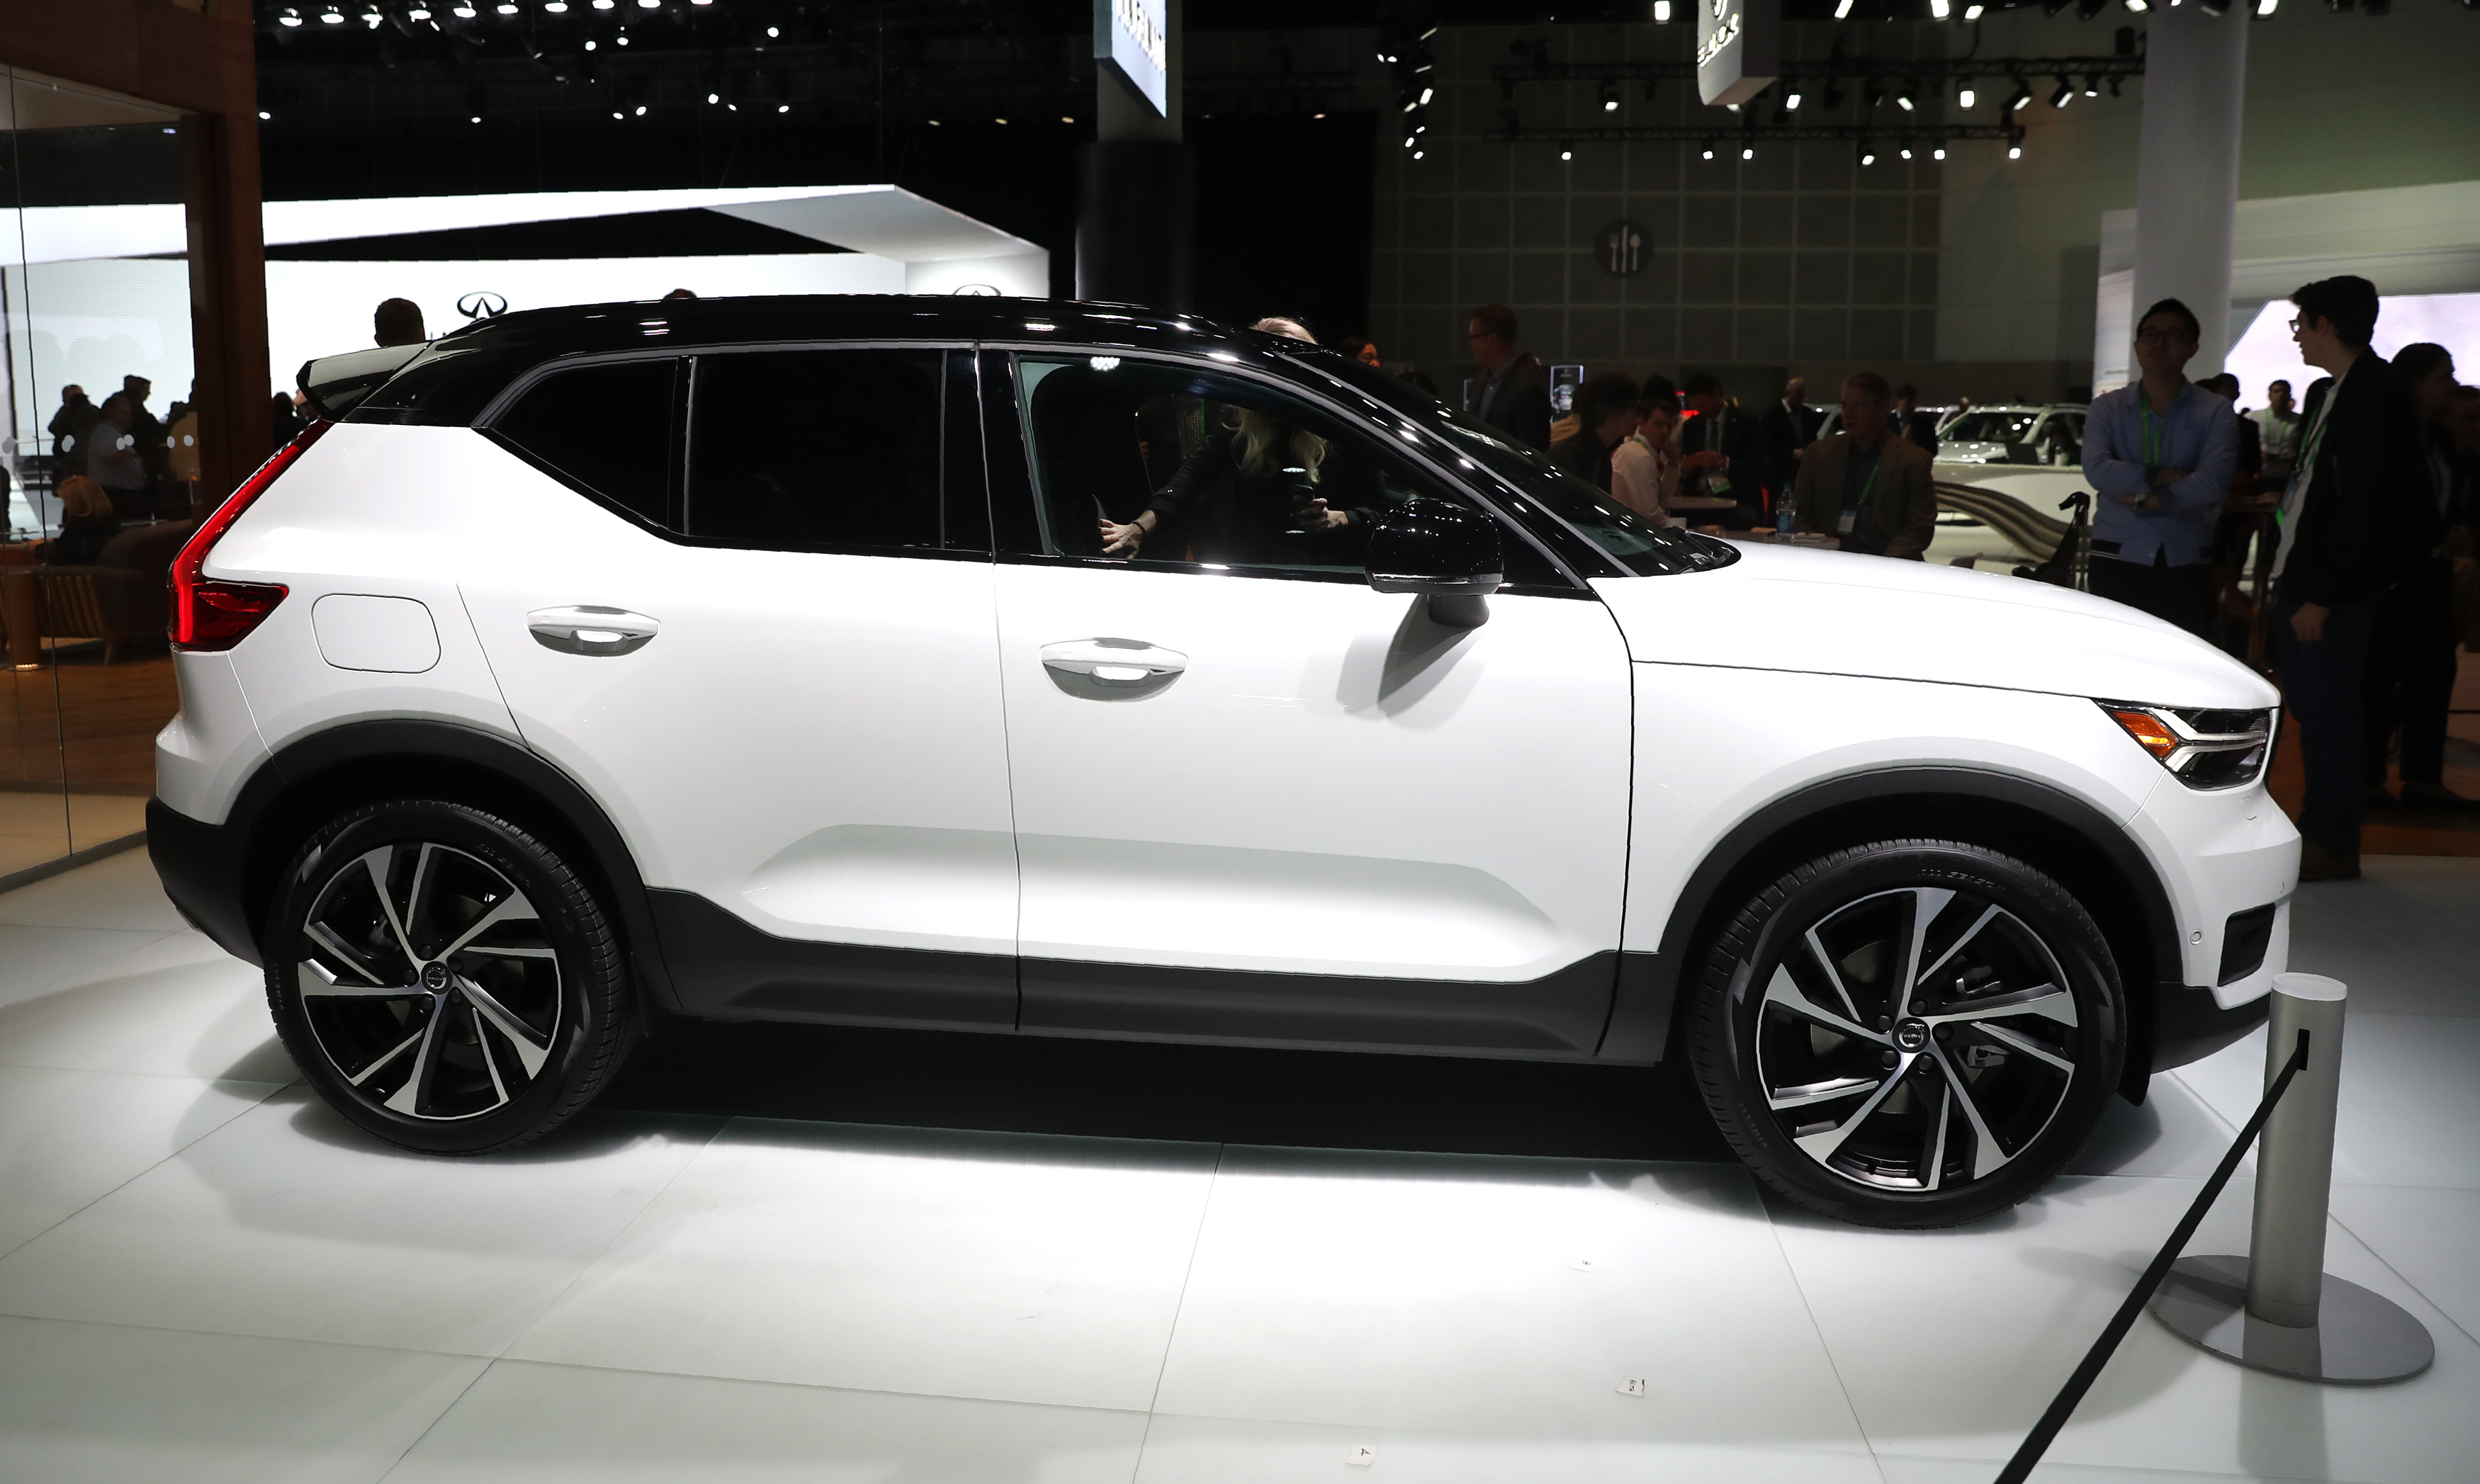 The Volvo XC40 SUV is displayed at the Los Angeles Auto Show in Los Angeles, California U.S. November 29, 2017. REUTERS/Lucy Nicholson - HP1EDBT1OXE9D